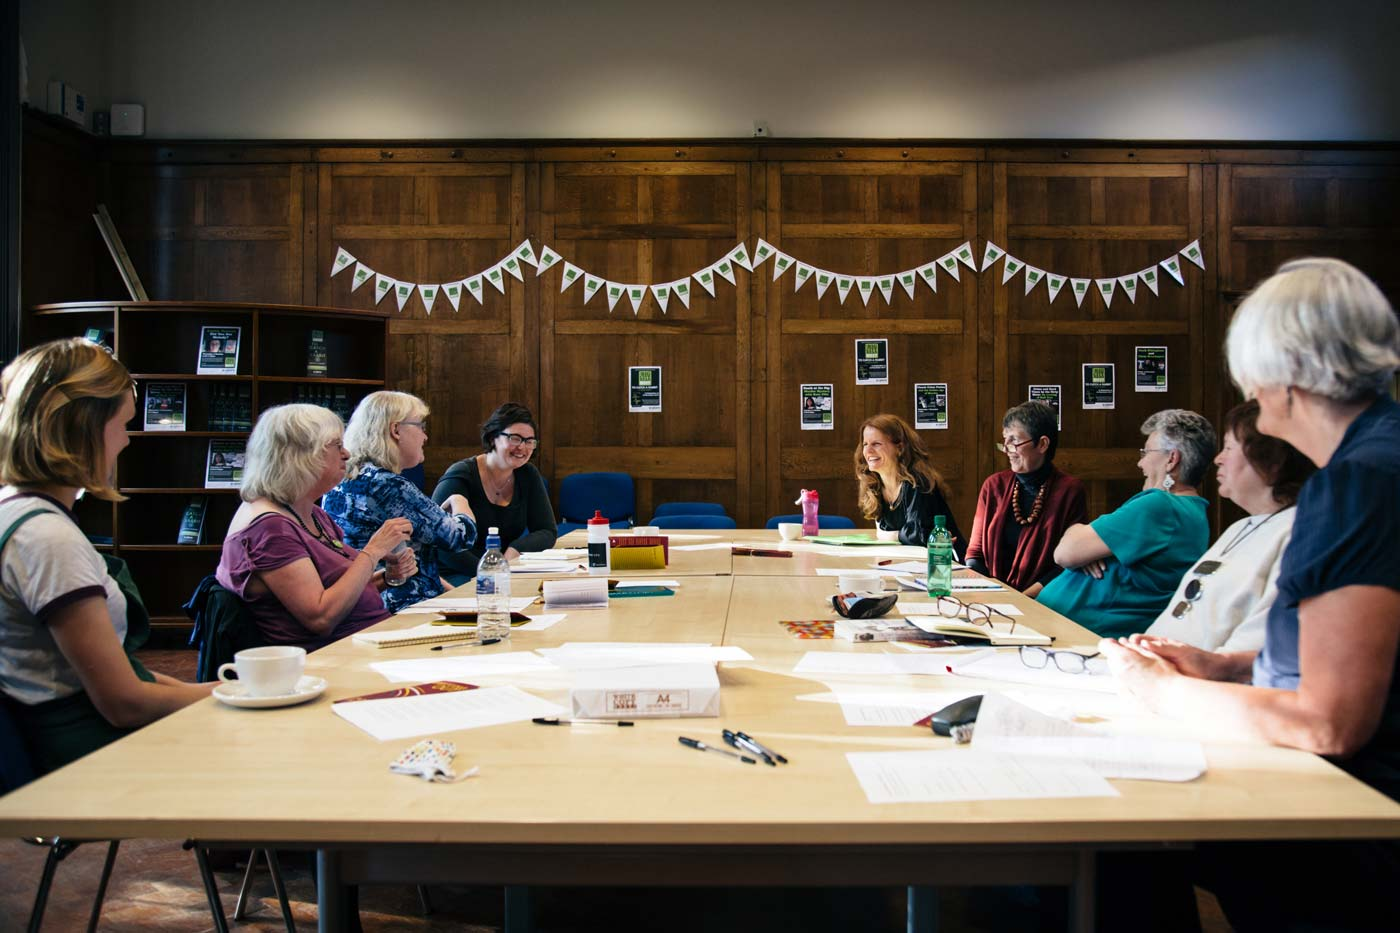 Anna Woodford leads a group of people at a poetry workshop